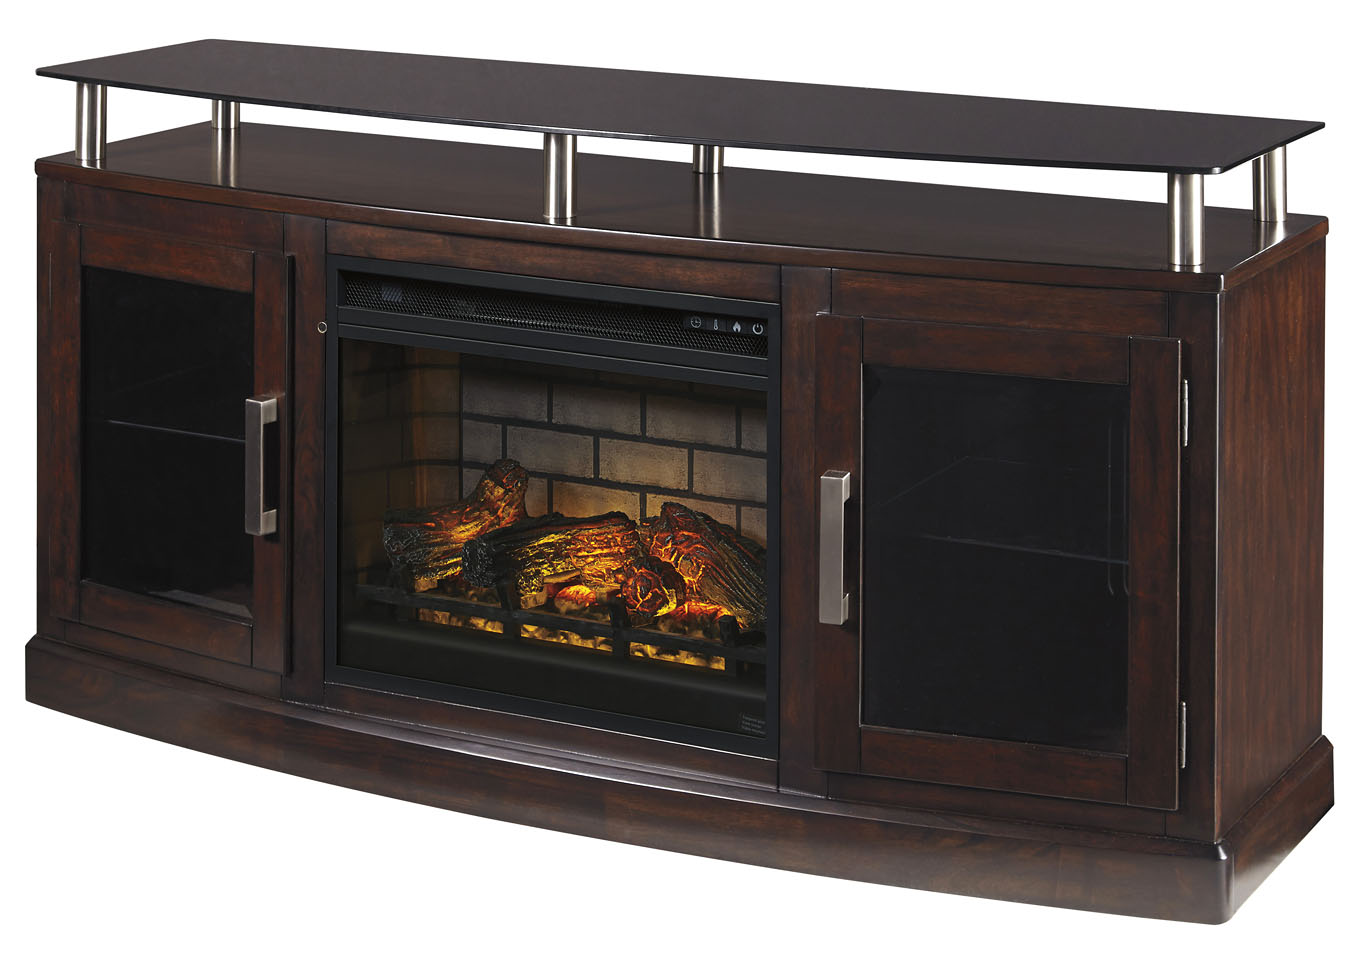 "Chanceen Dark Brown 60"" TV Stand w/Fireplace Insert Infrared,Signature Design By Ashley"